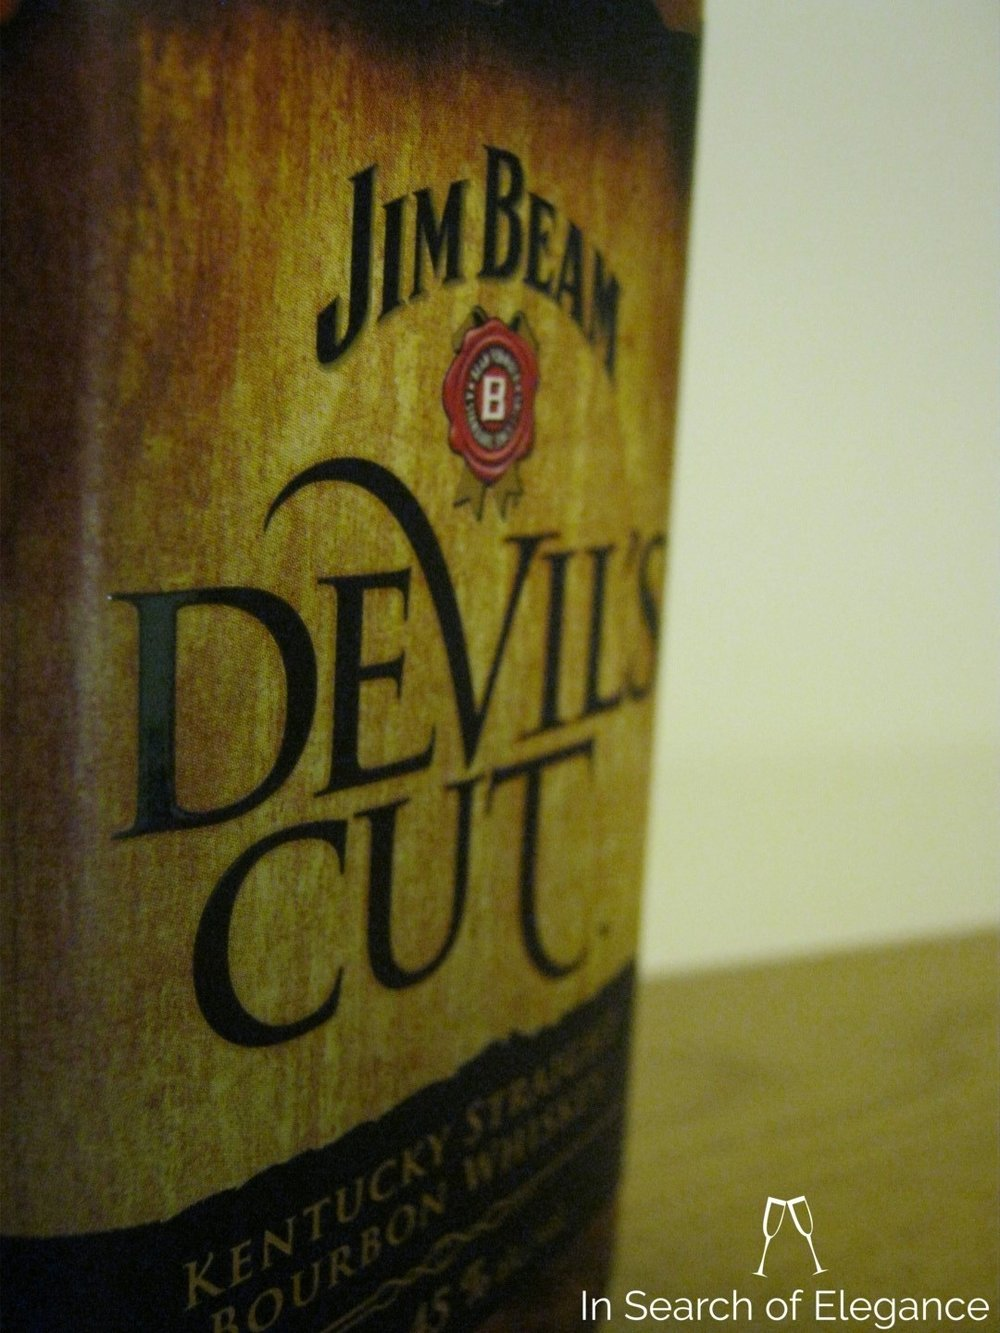 Jim Beam Devils.jpg